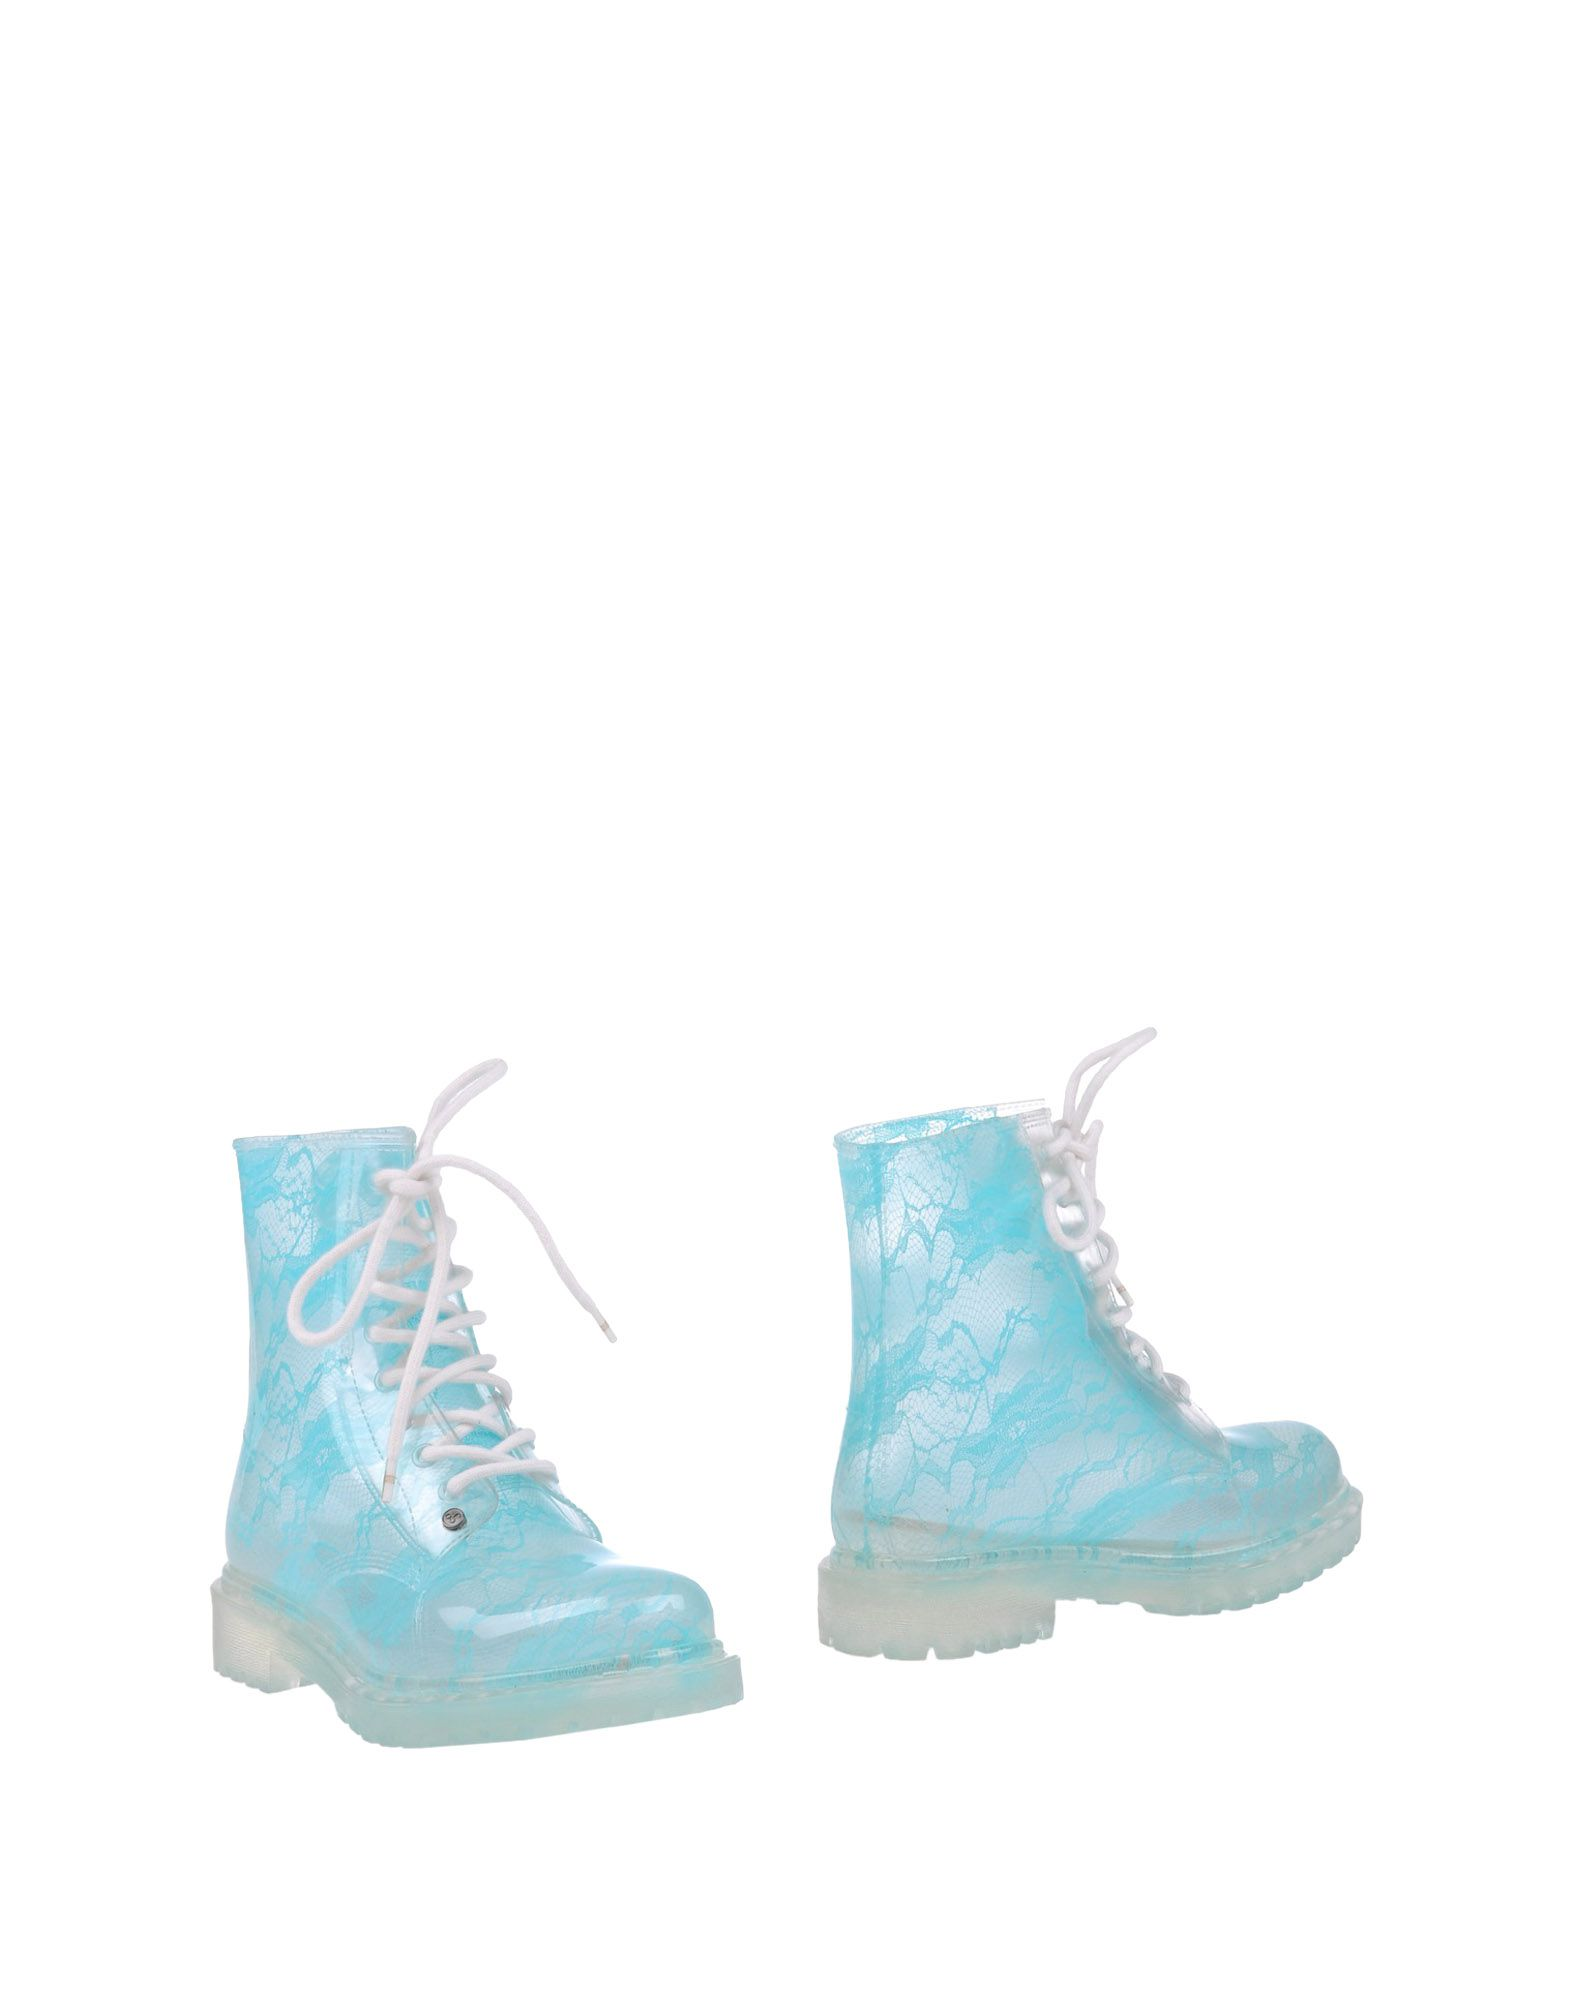 G SIX WORKSHOP Ankle Boots in Turquoise